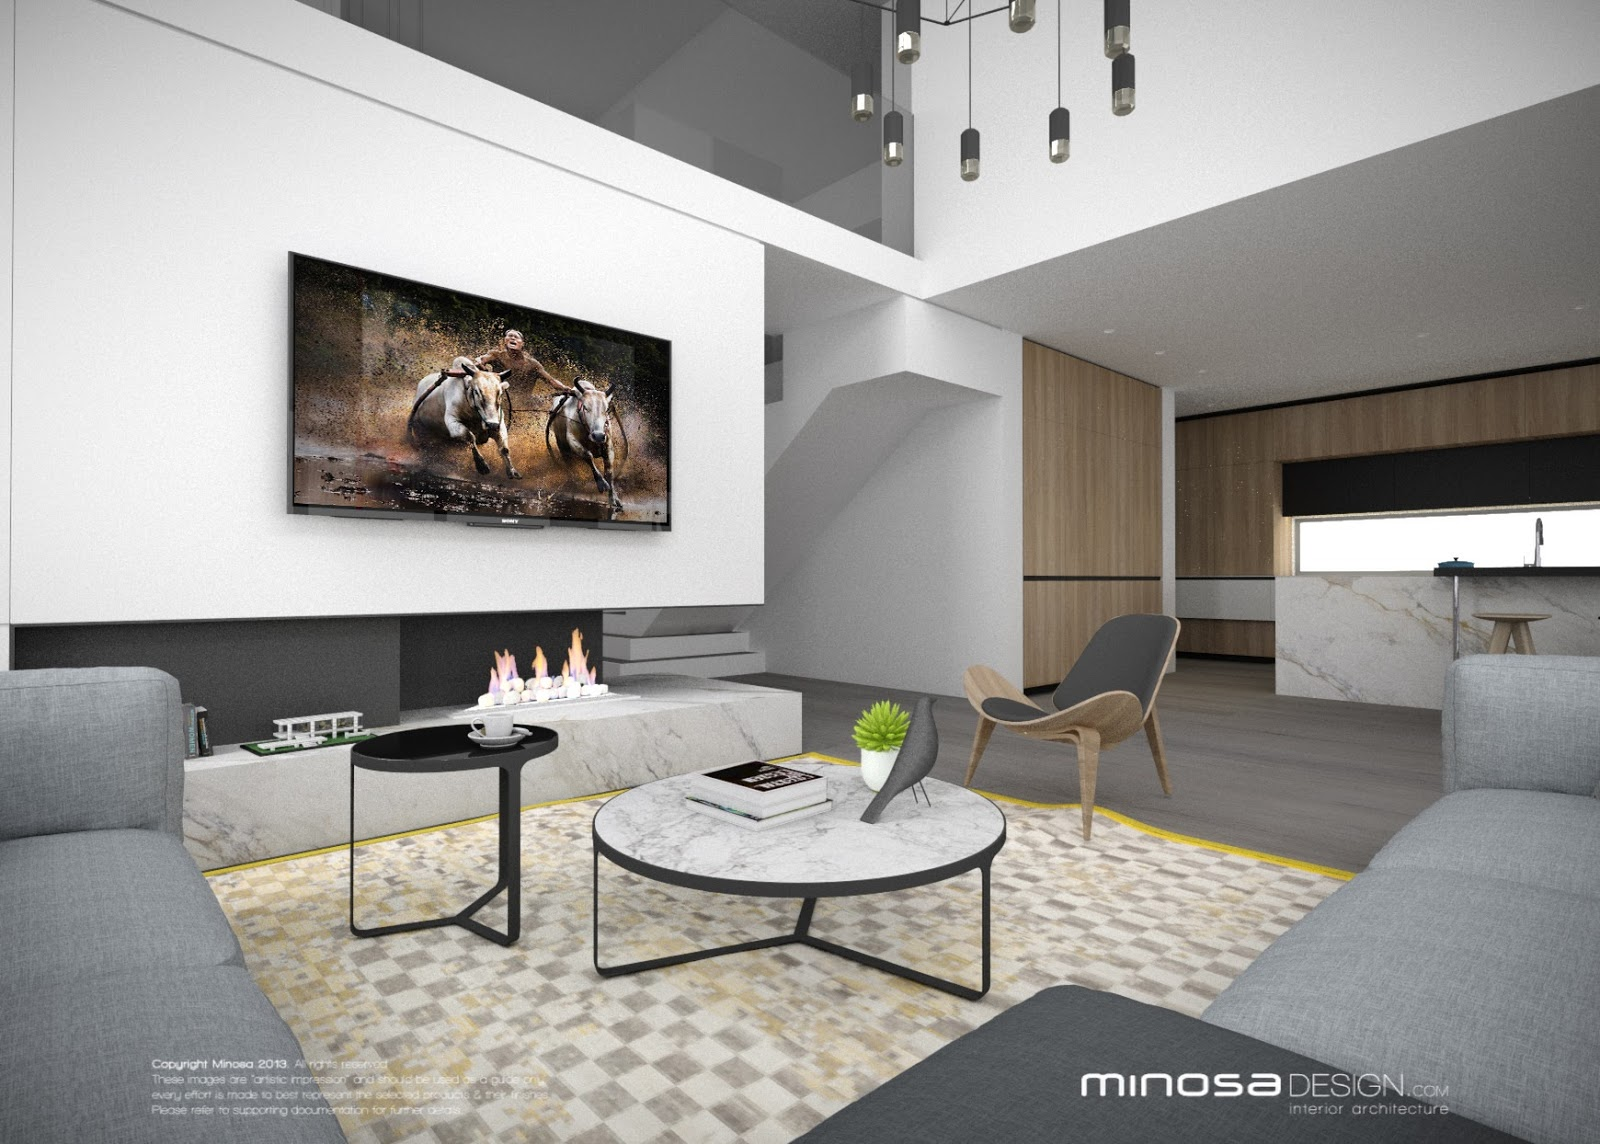 Modern Living Room With Kitchen Interior Design minosa: the modern living room - kitchen, lounge & dine